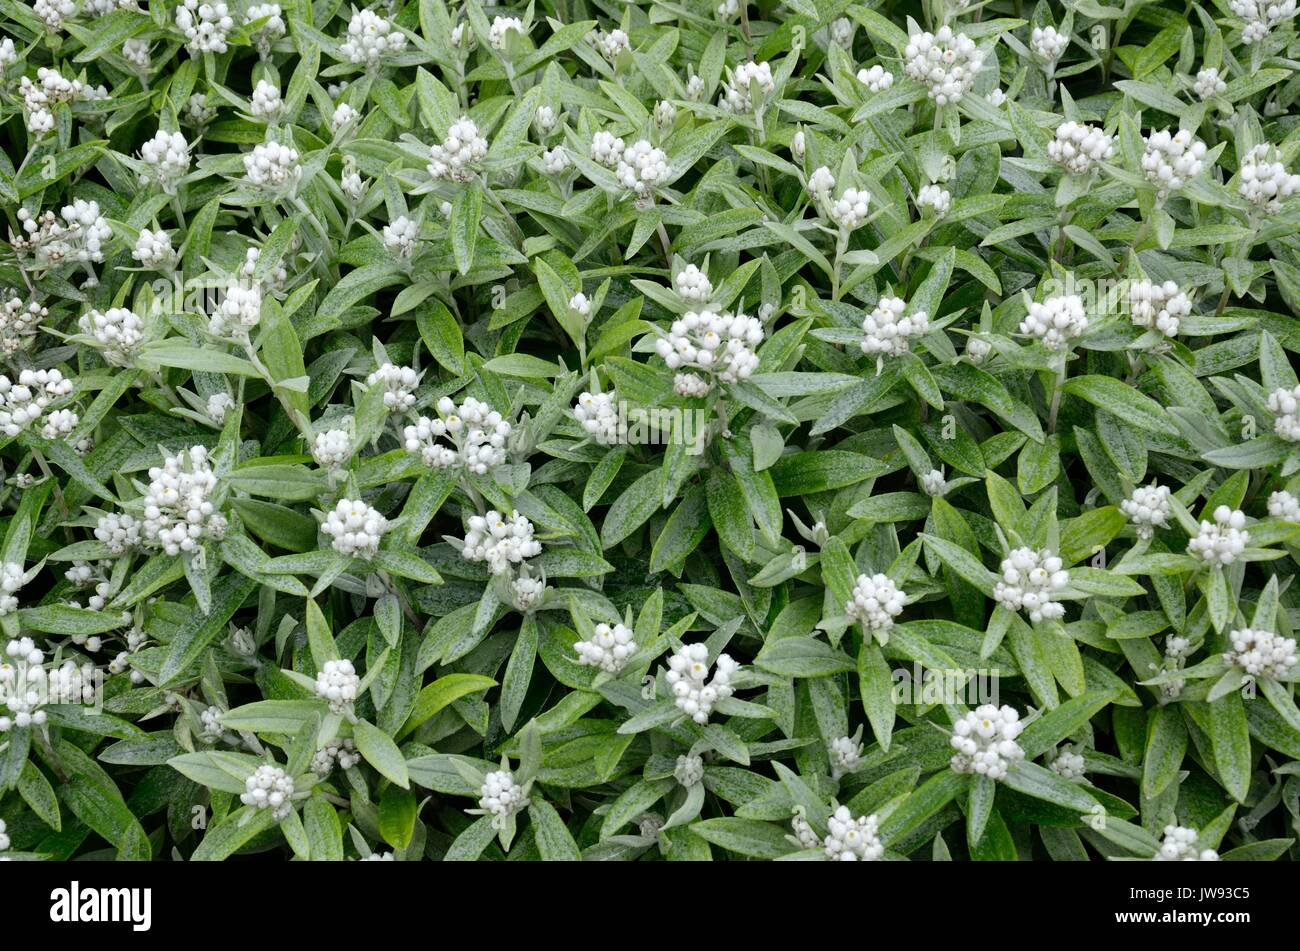 Clusters of small white flowers stock photos clusters of small anaphalis triplinervis sommershnee white everlasting flowers stock image mightylinksfo